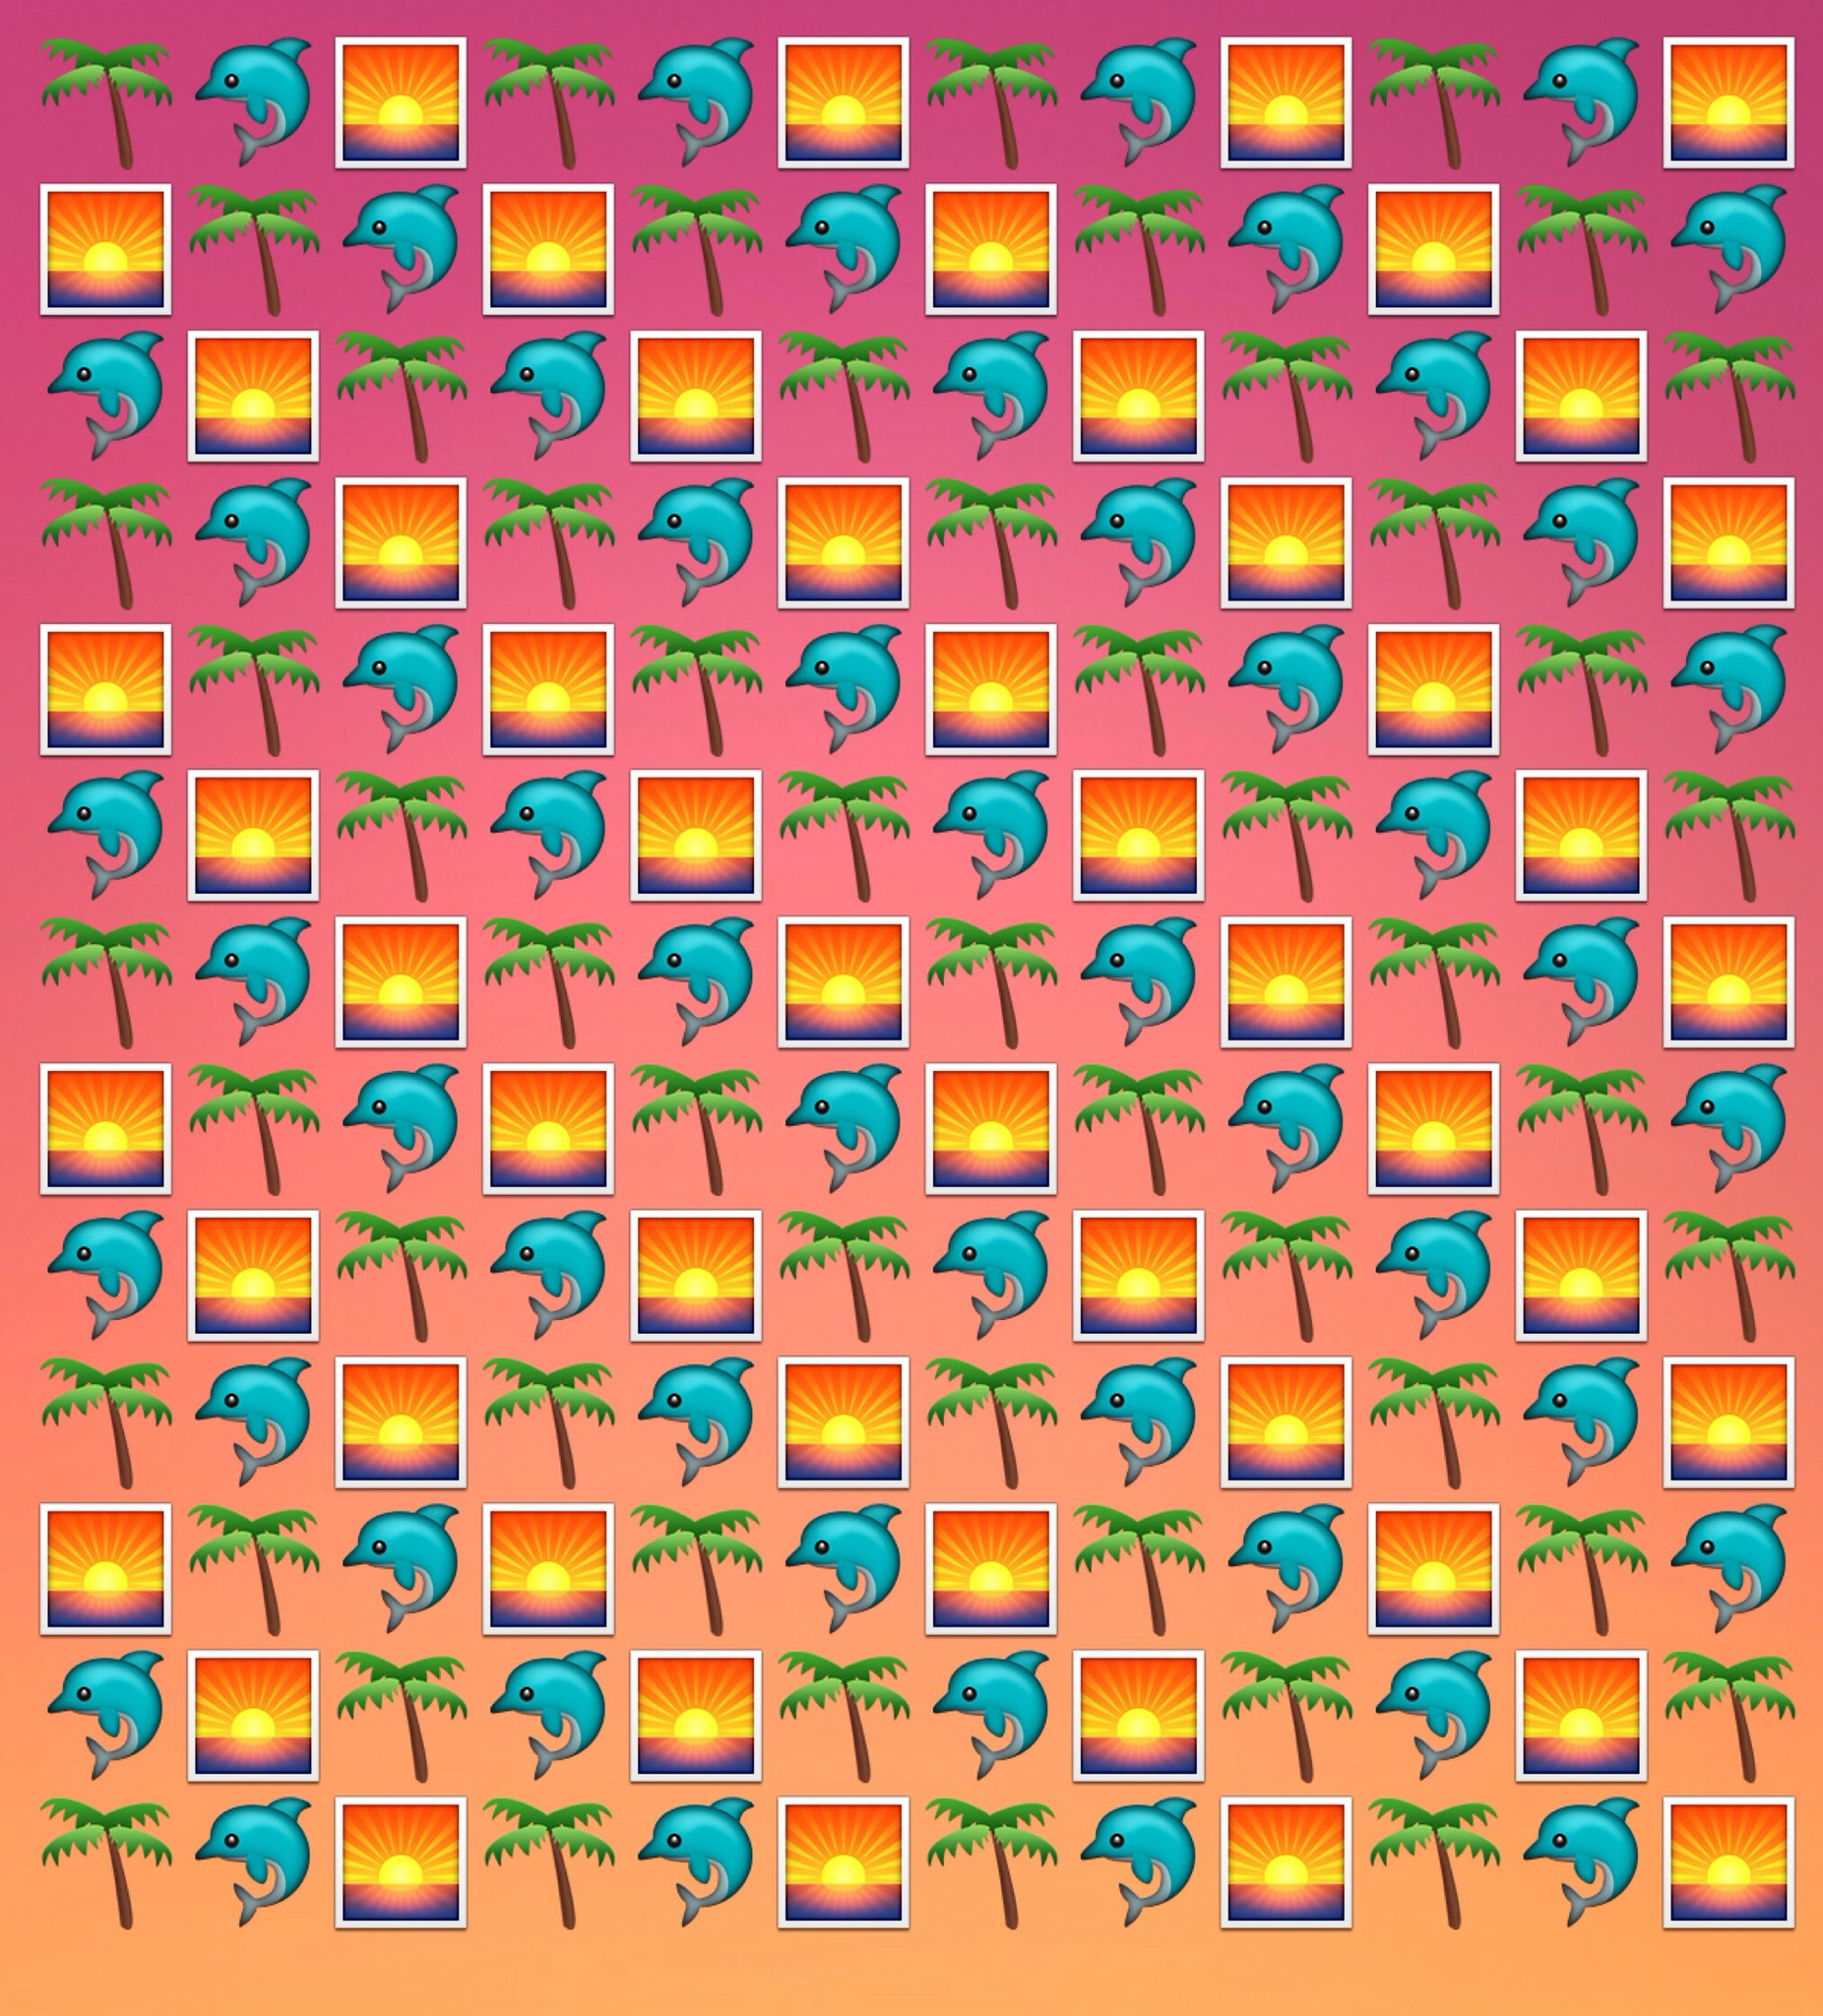 Emoji wallpaper background for desktop or phone ~ dolphins on a tropical  sunset beach